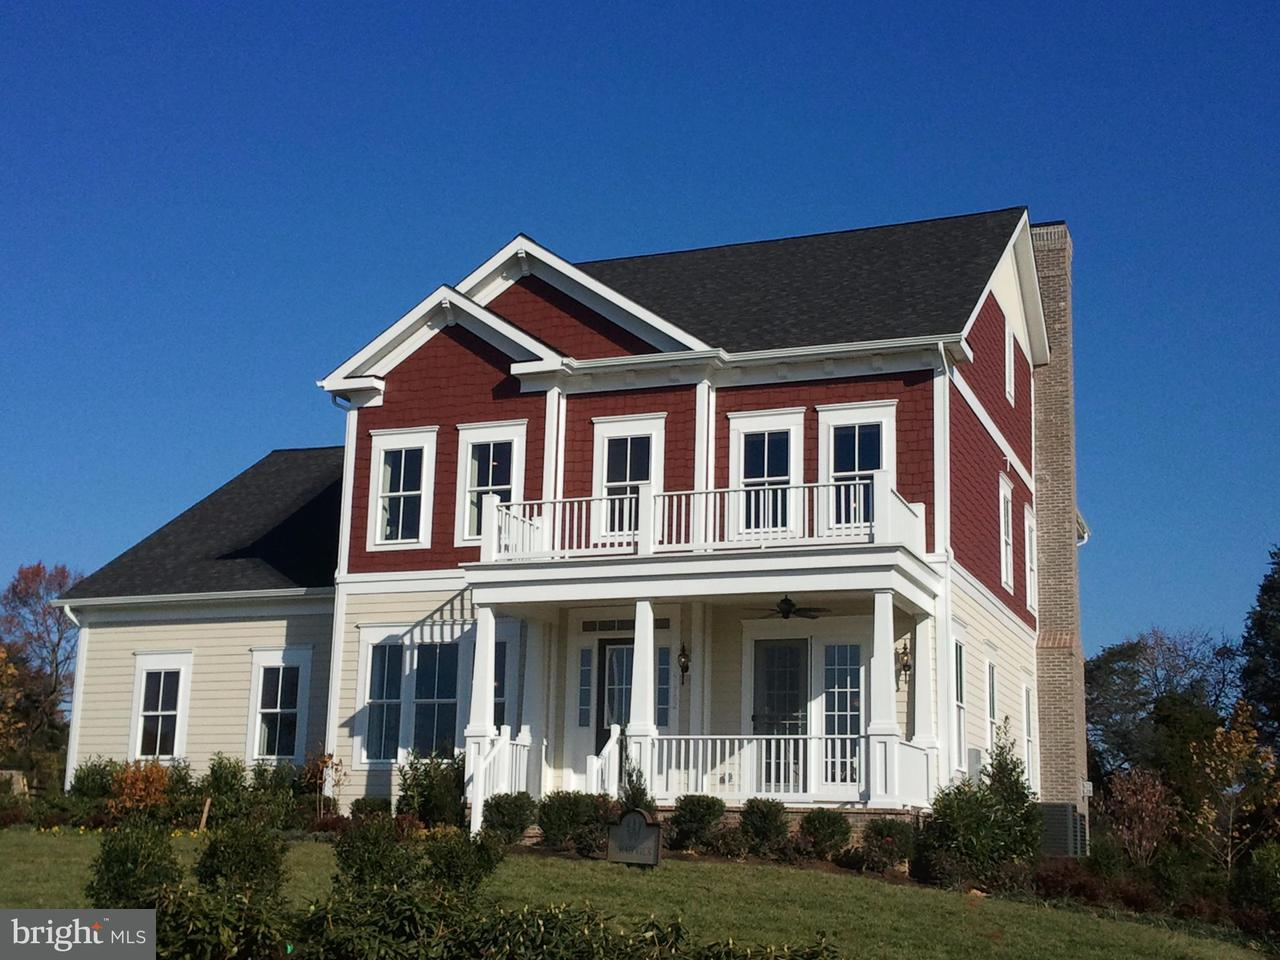 Single Family Home for Sale at 41762 ASHMEADOW Court 41762 ASHMEADOW Court Ashburn, Virginia 20148 United States